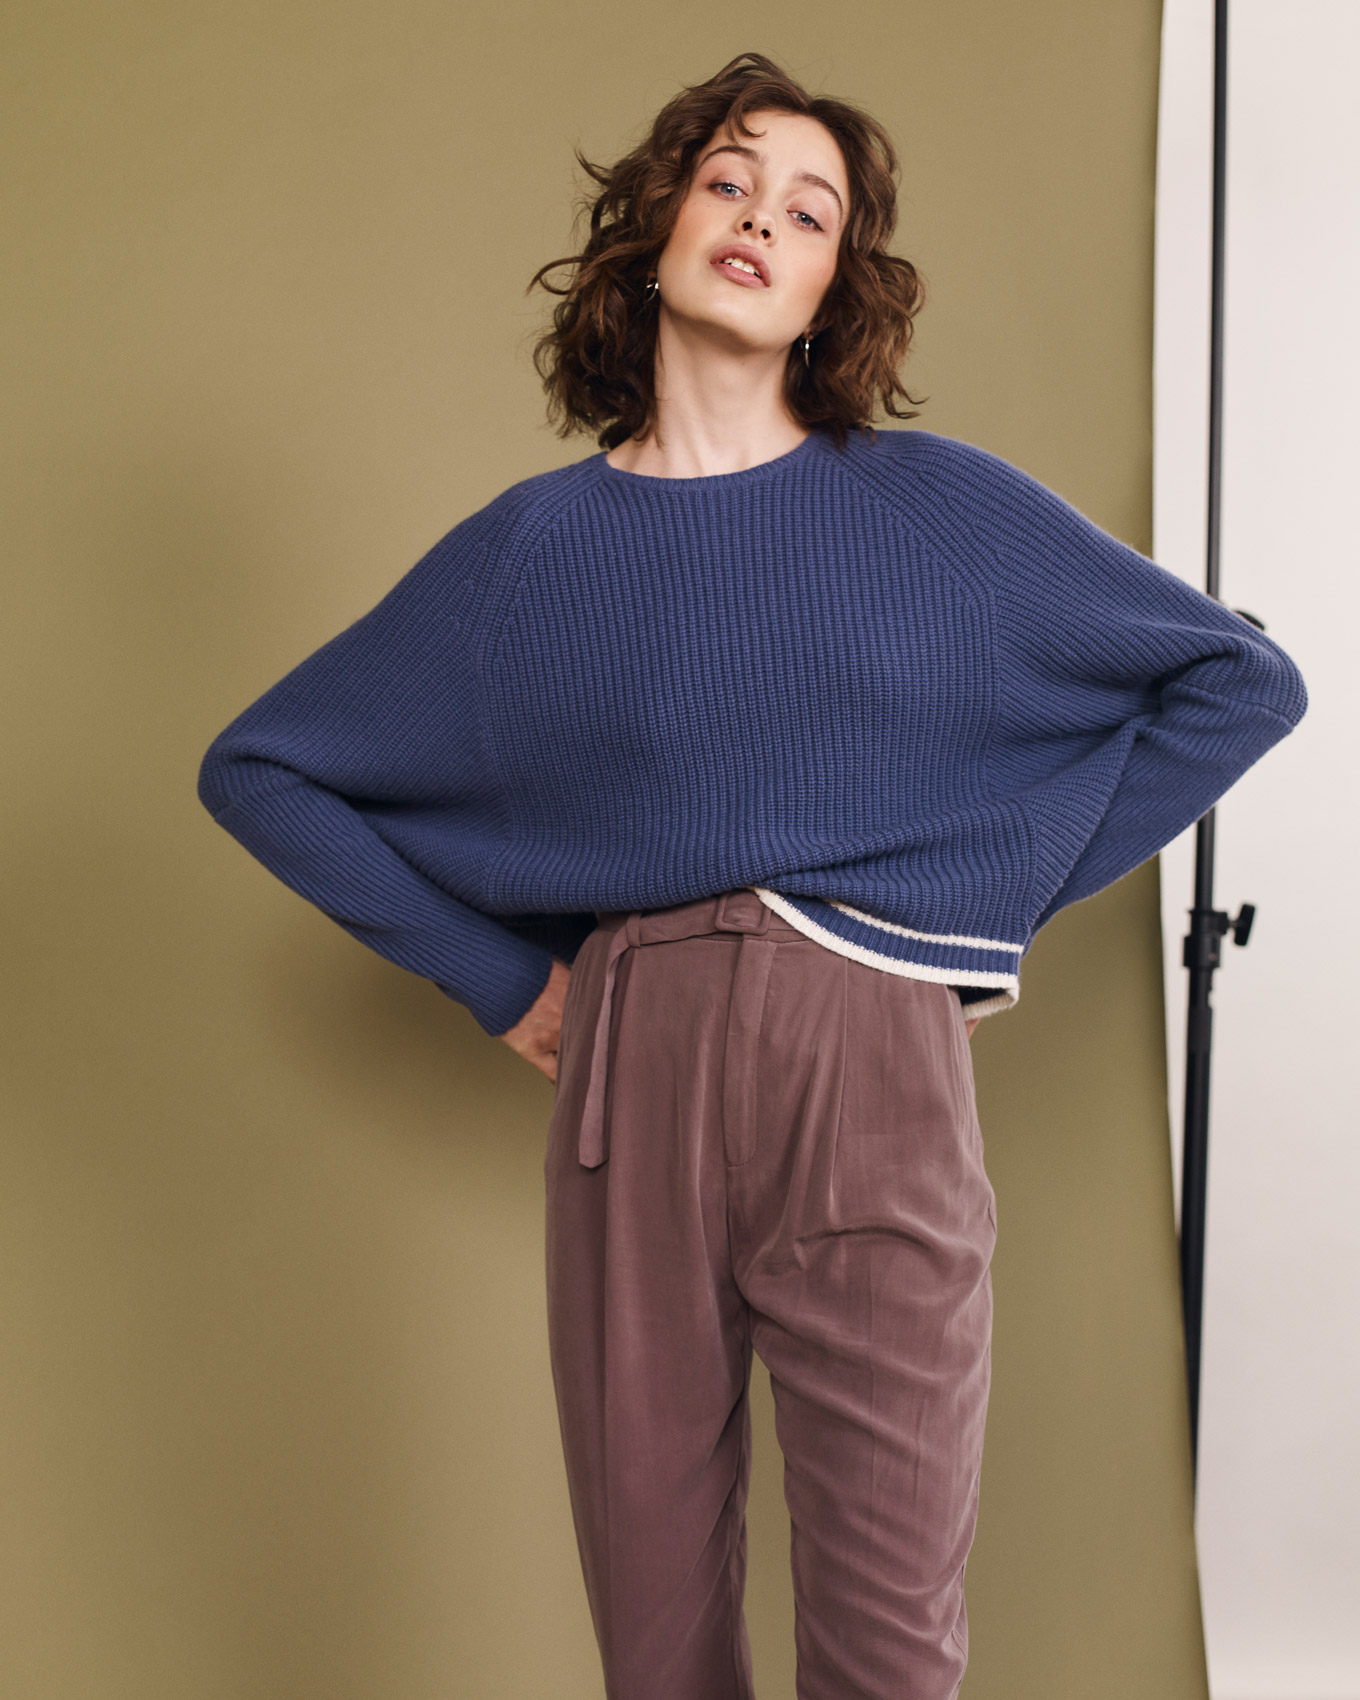 hellotpd_Bettina_Bati_Duffy_Lookbook_2019_5